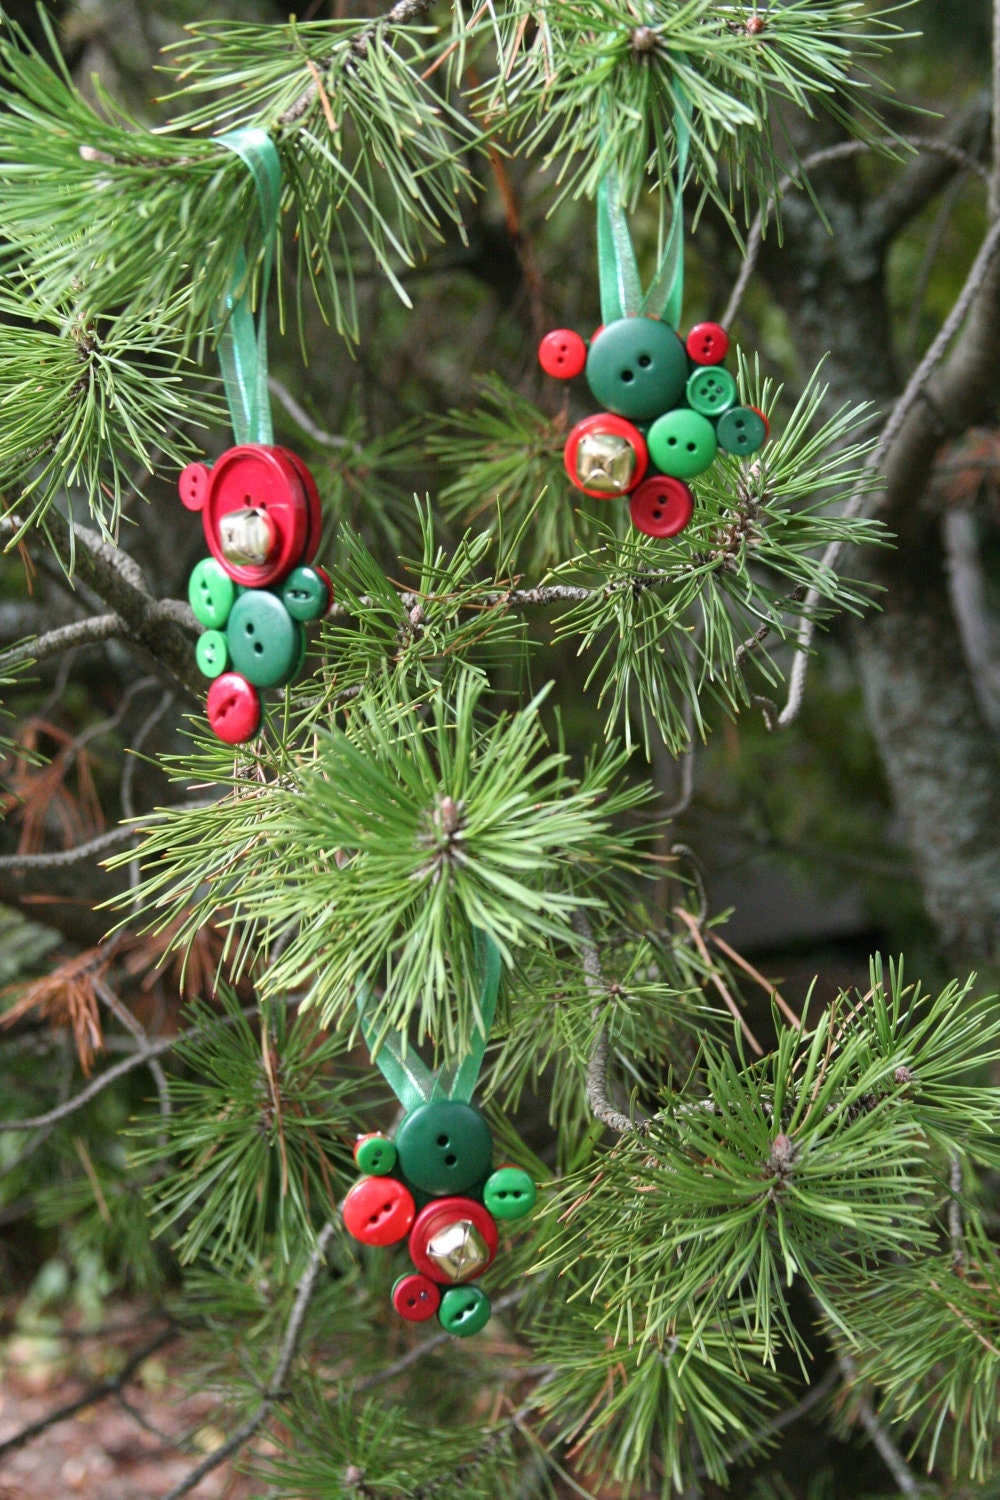 Christmas ornaments made with jingle bells and button by